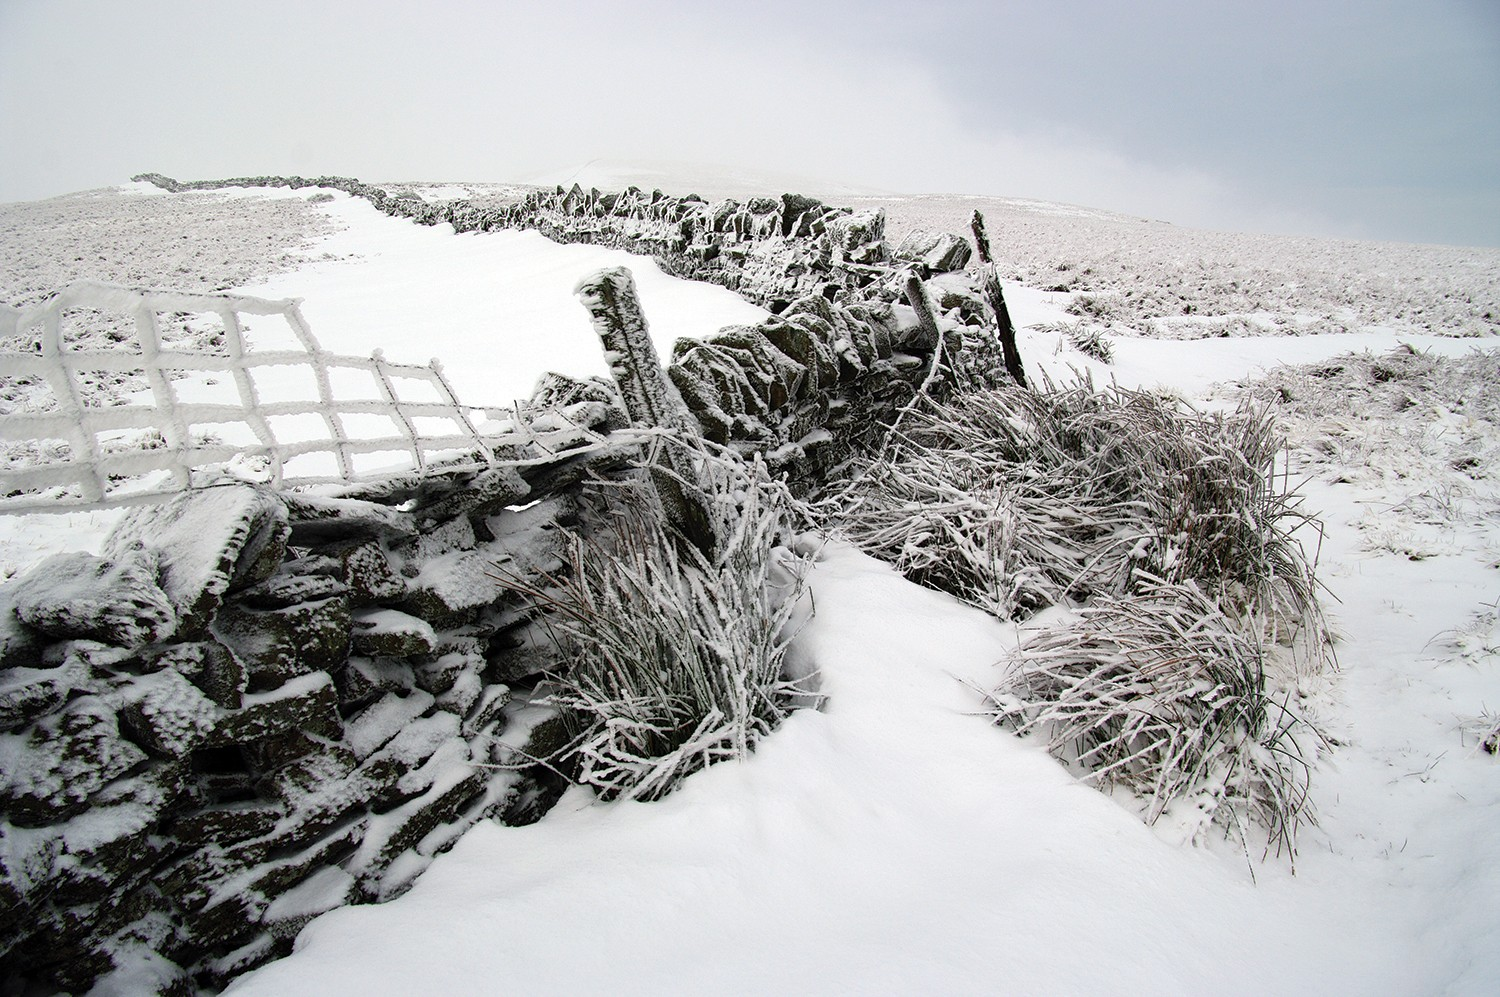 A barricade in a field covered in snow and ice.